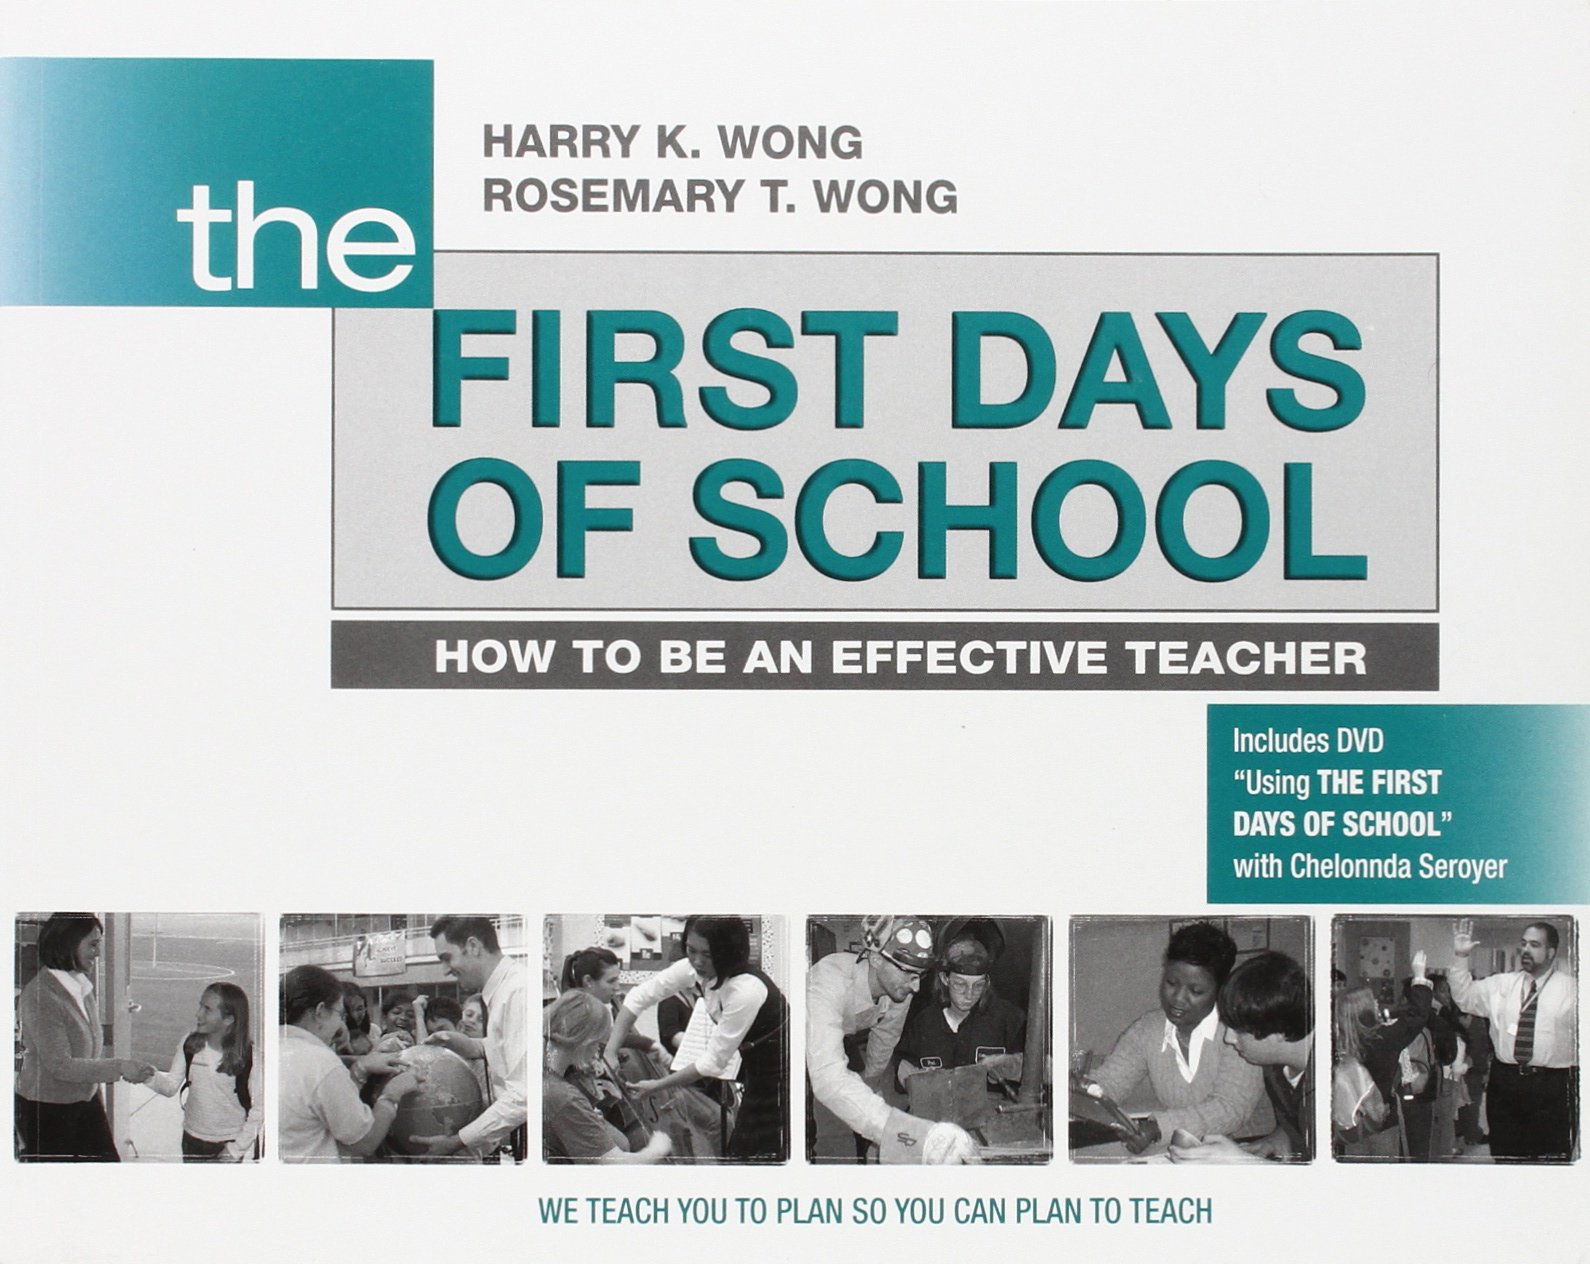 The First Days of School: How to Be an Effective Teacher: Harry K. Wong,  Rosemary T. Wong: 0858160414232: Books - Amazon.ca